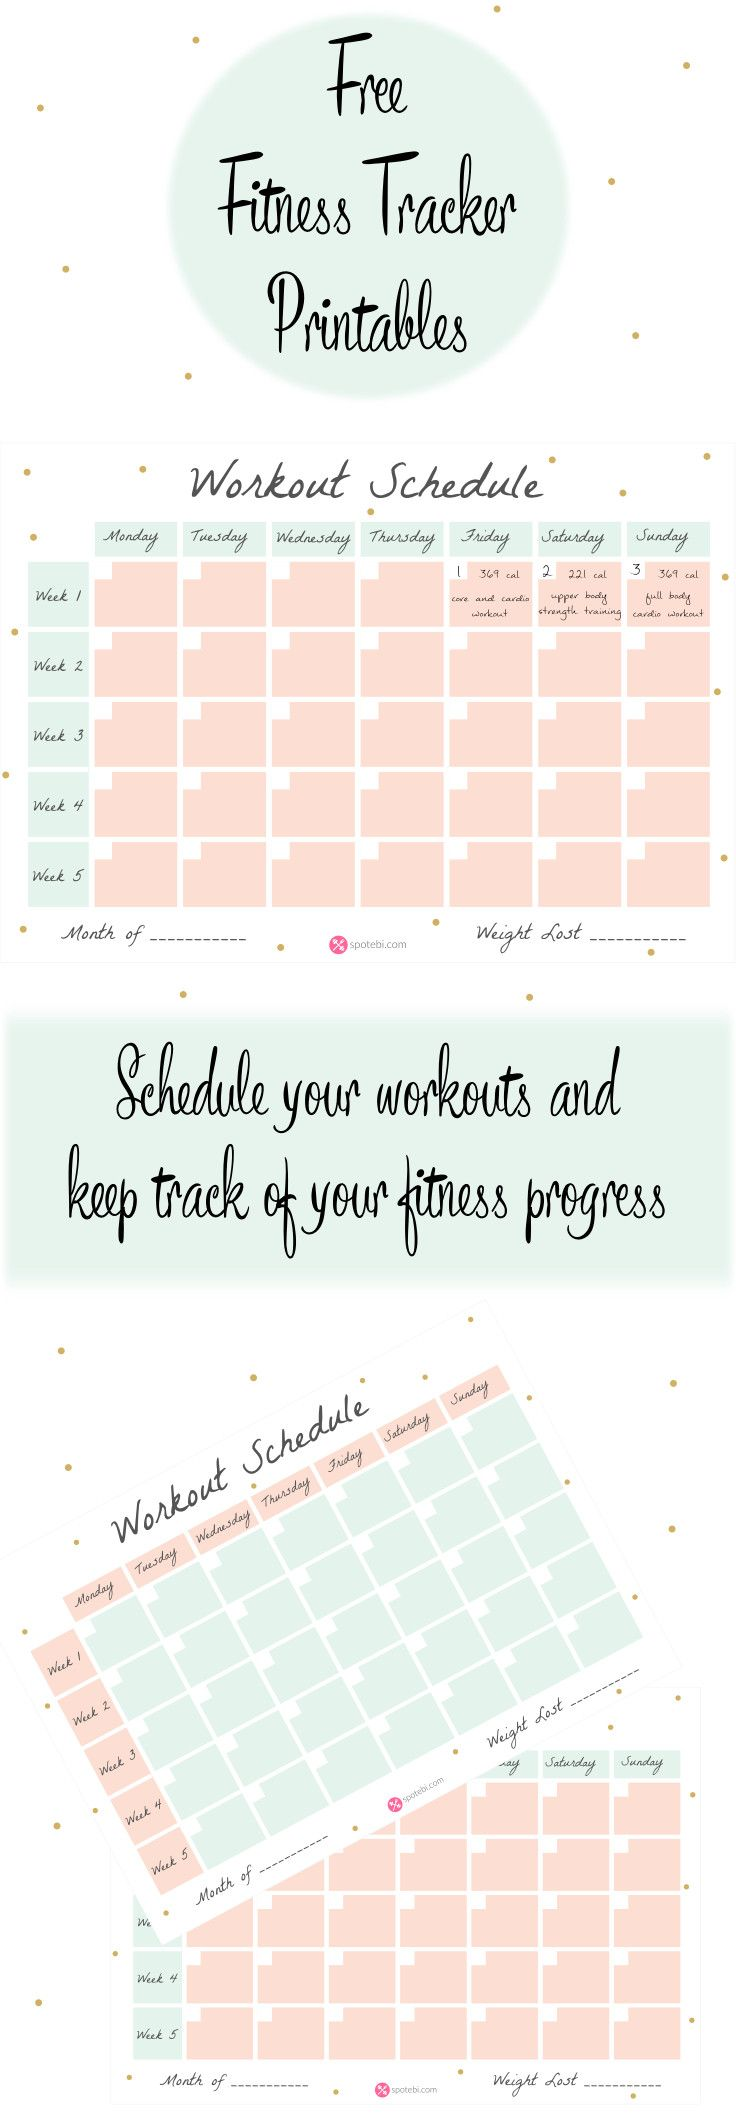 Best 10+ Workout planner ideas on Pinterest | Diet journal, Weight ...